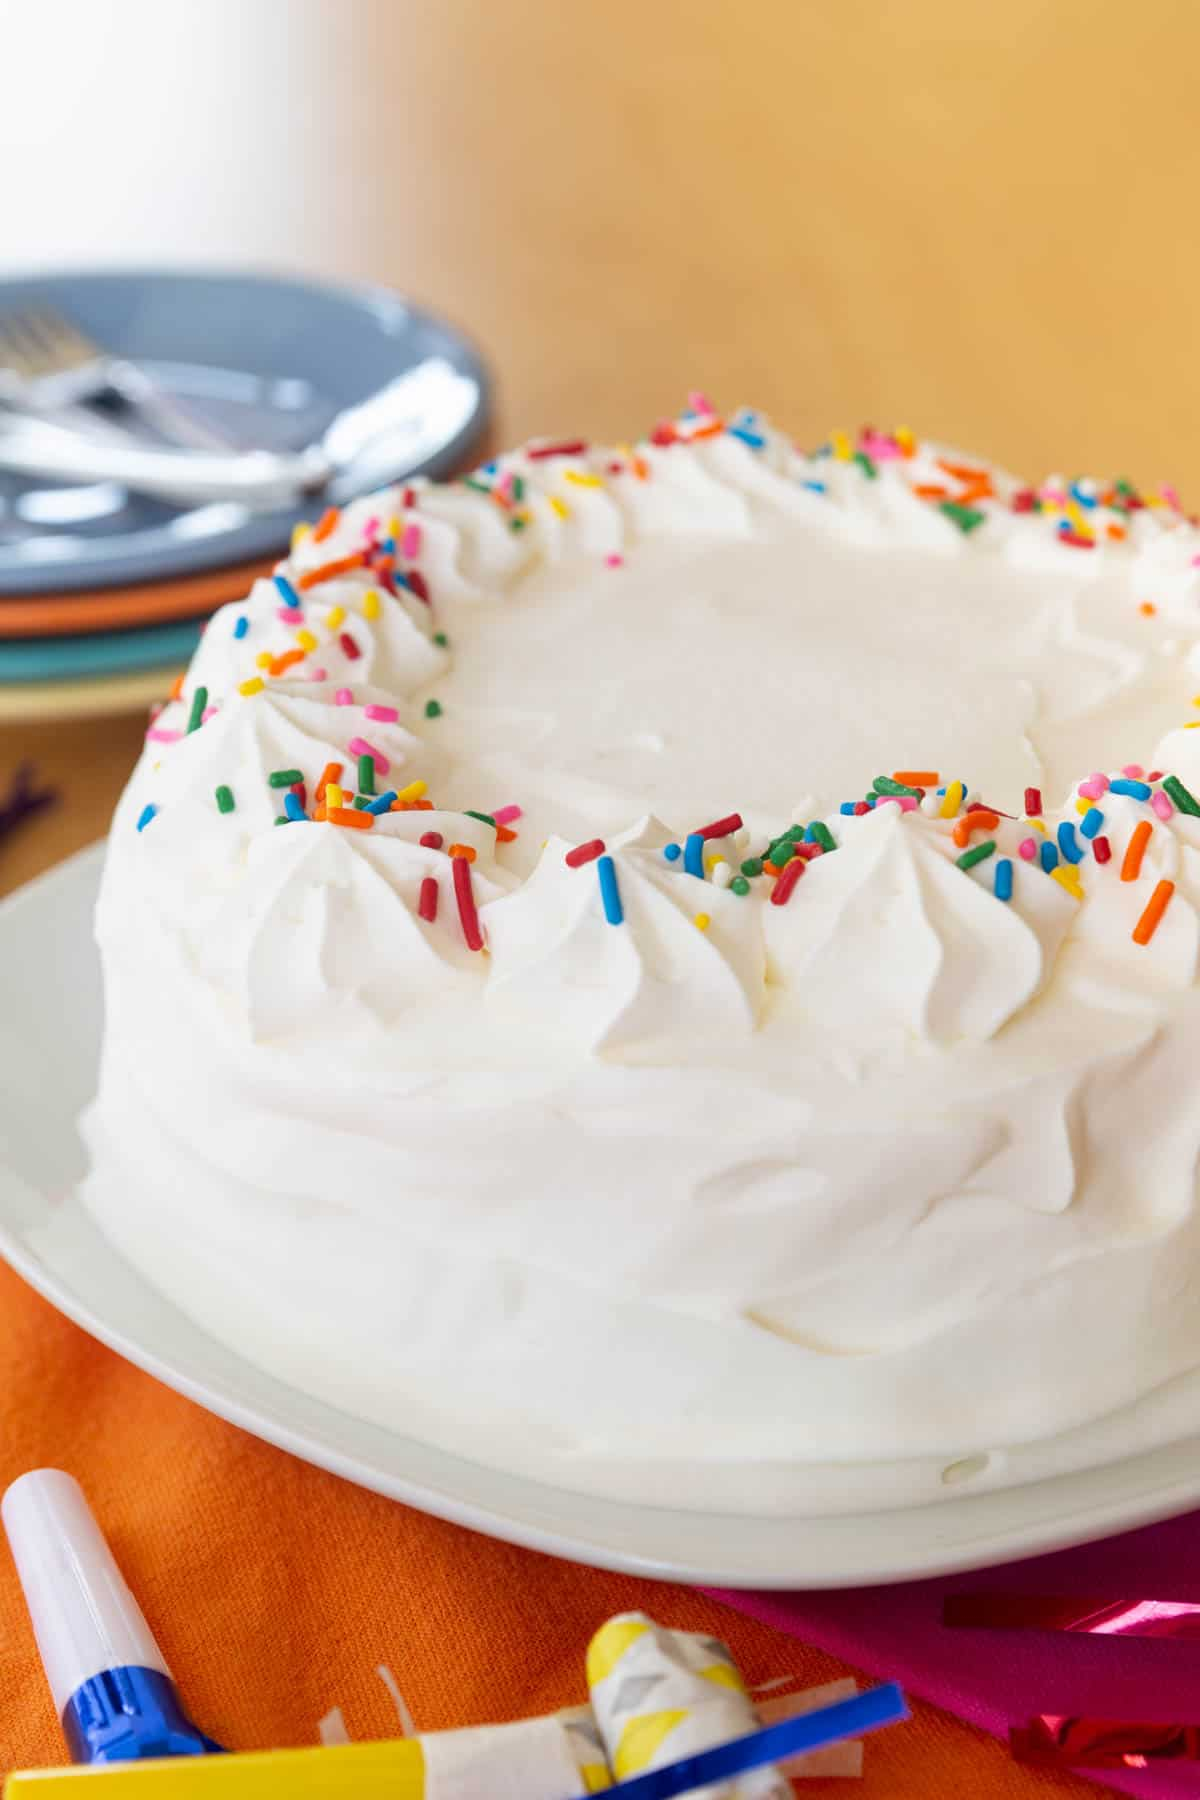 Whipped-cream covered cake on a white plate surrounded by plates and party horns